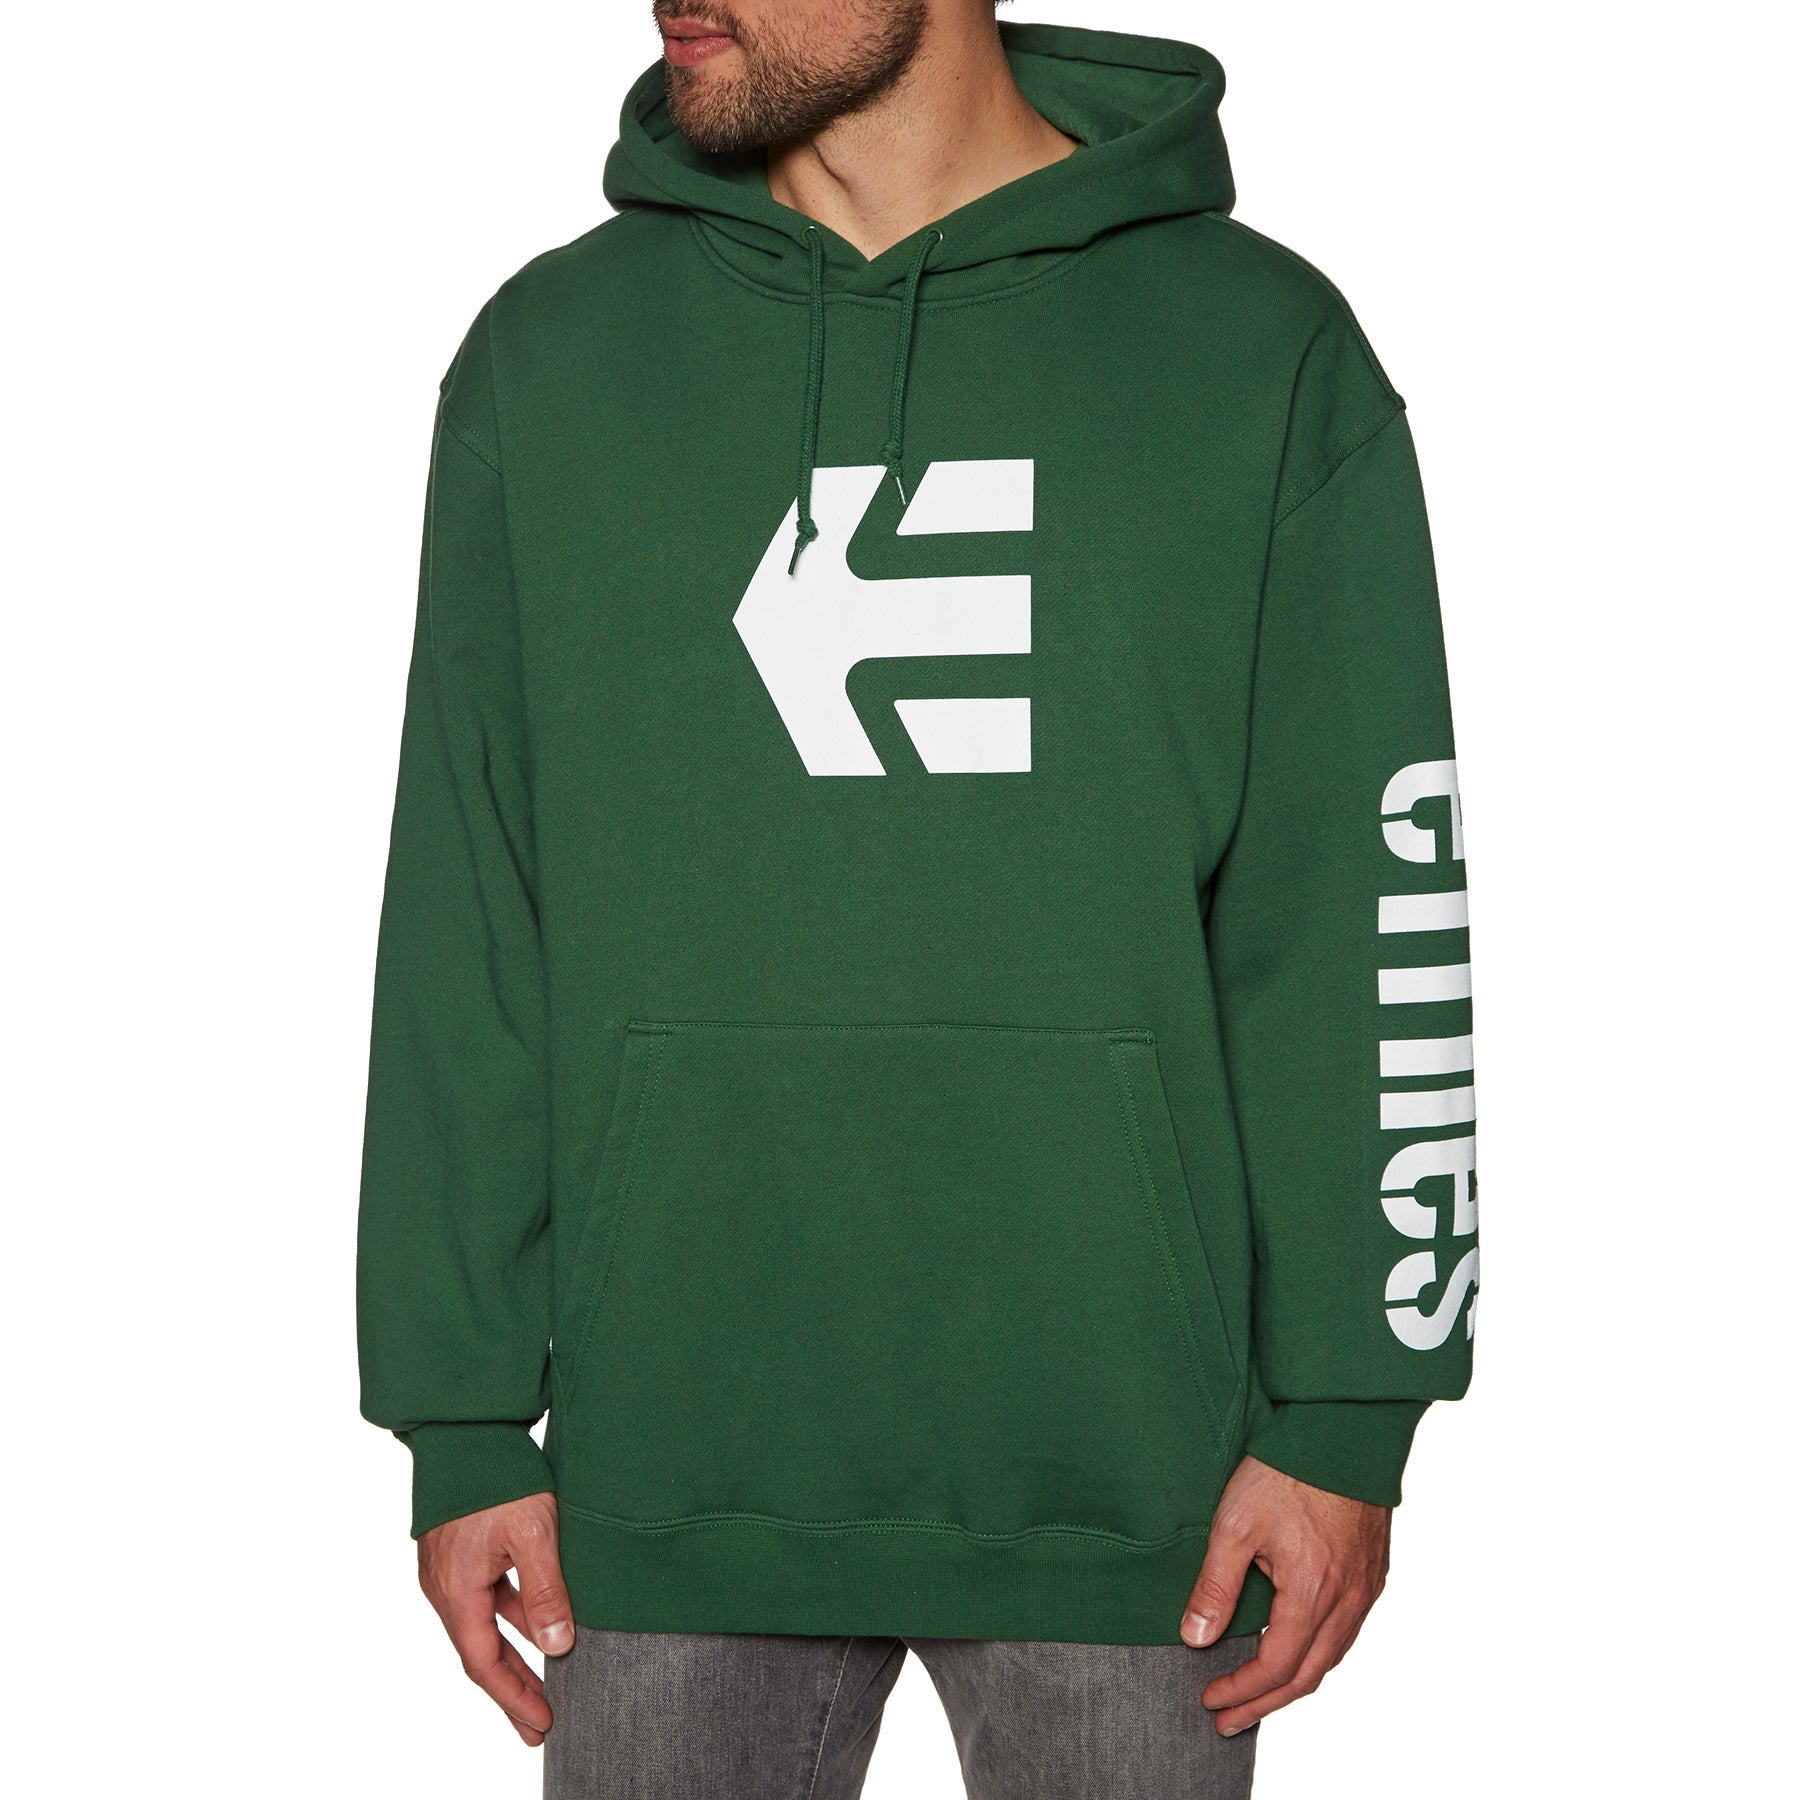 Details about Etnies Icon Hoody Pullover Dark Green All Sizes